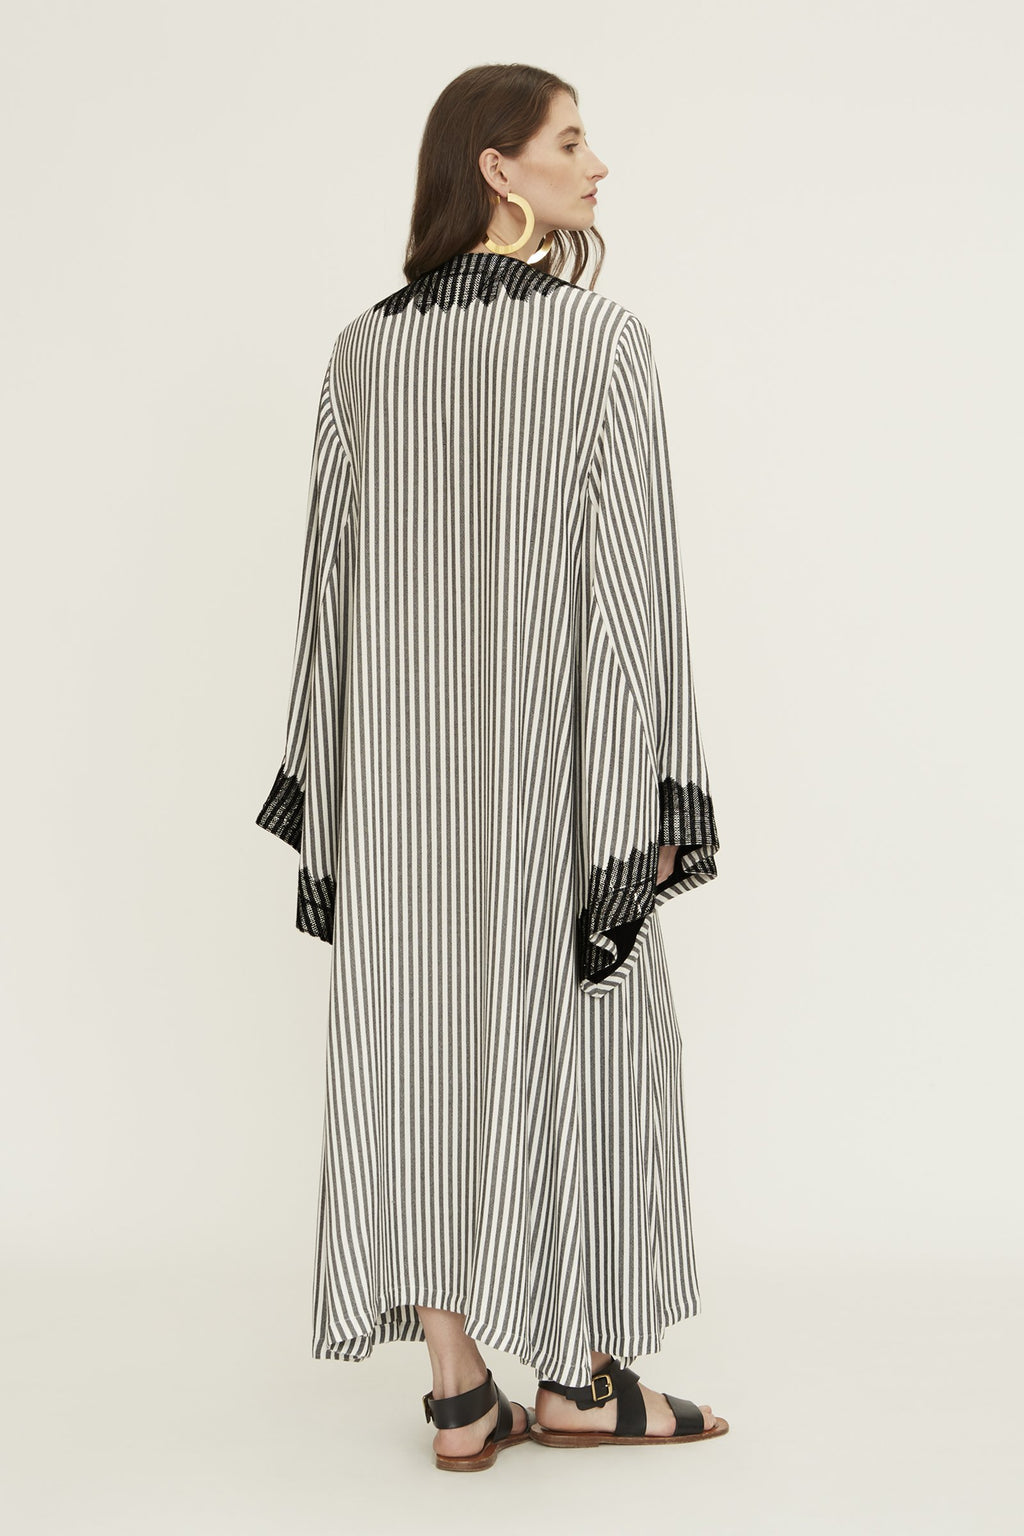 Ourika Caftan in Stripe